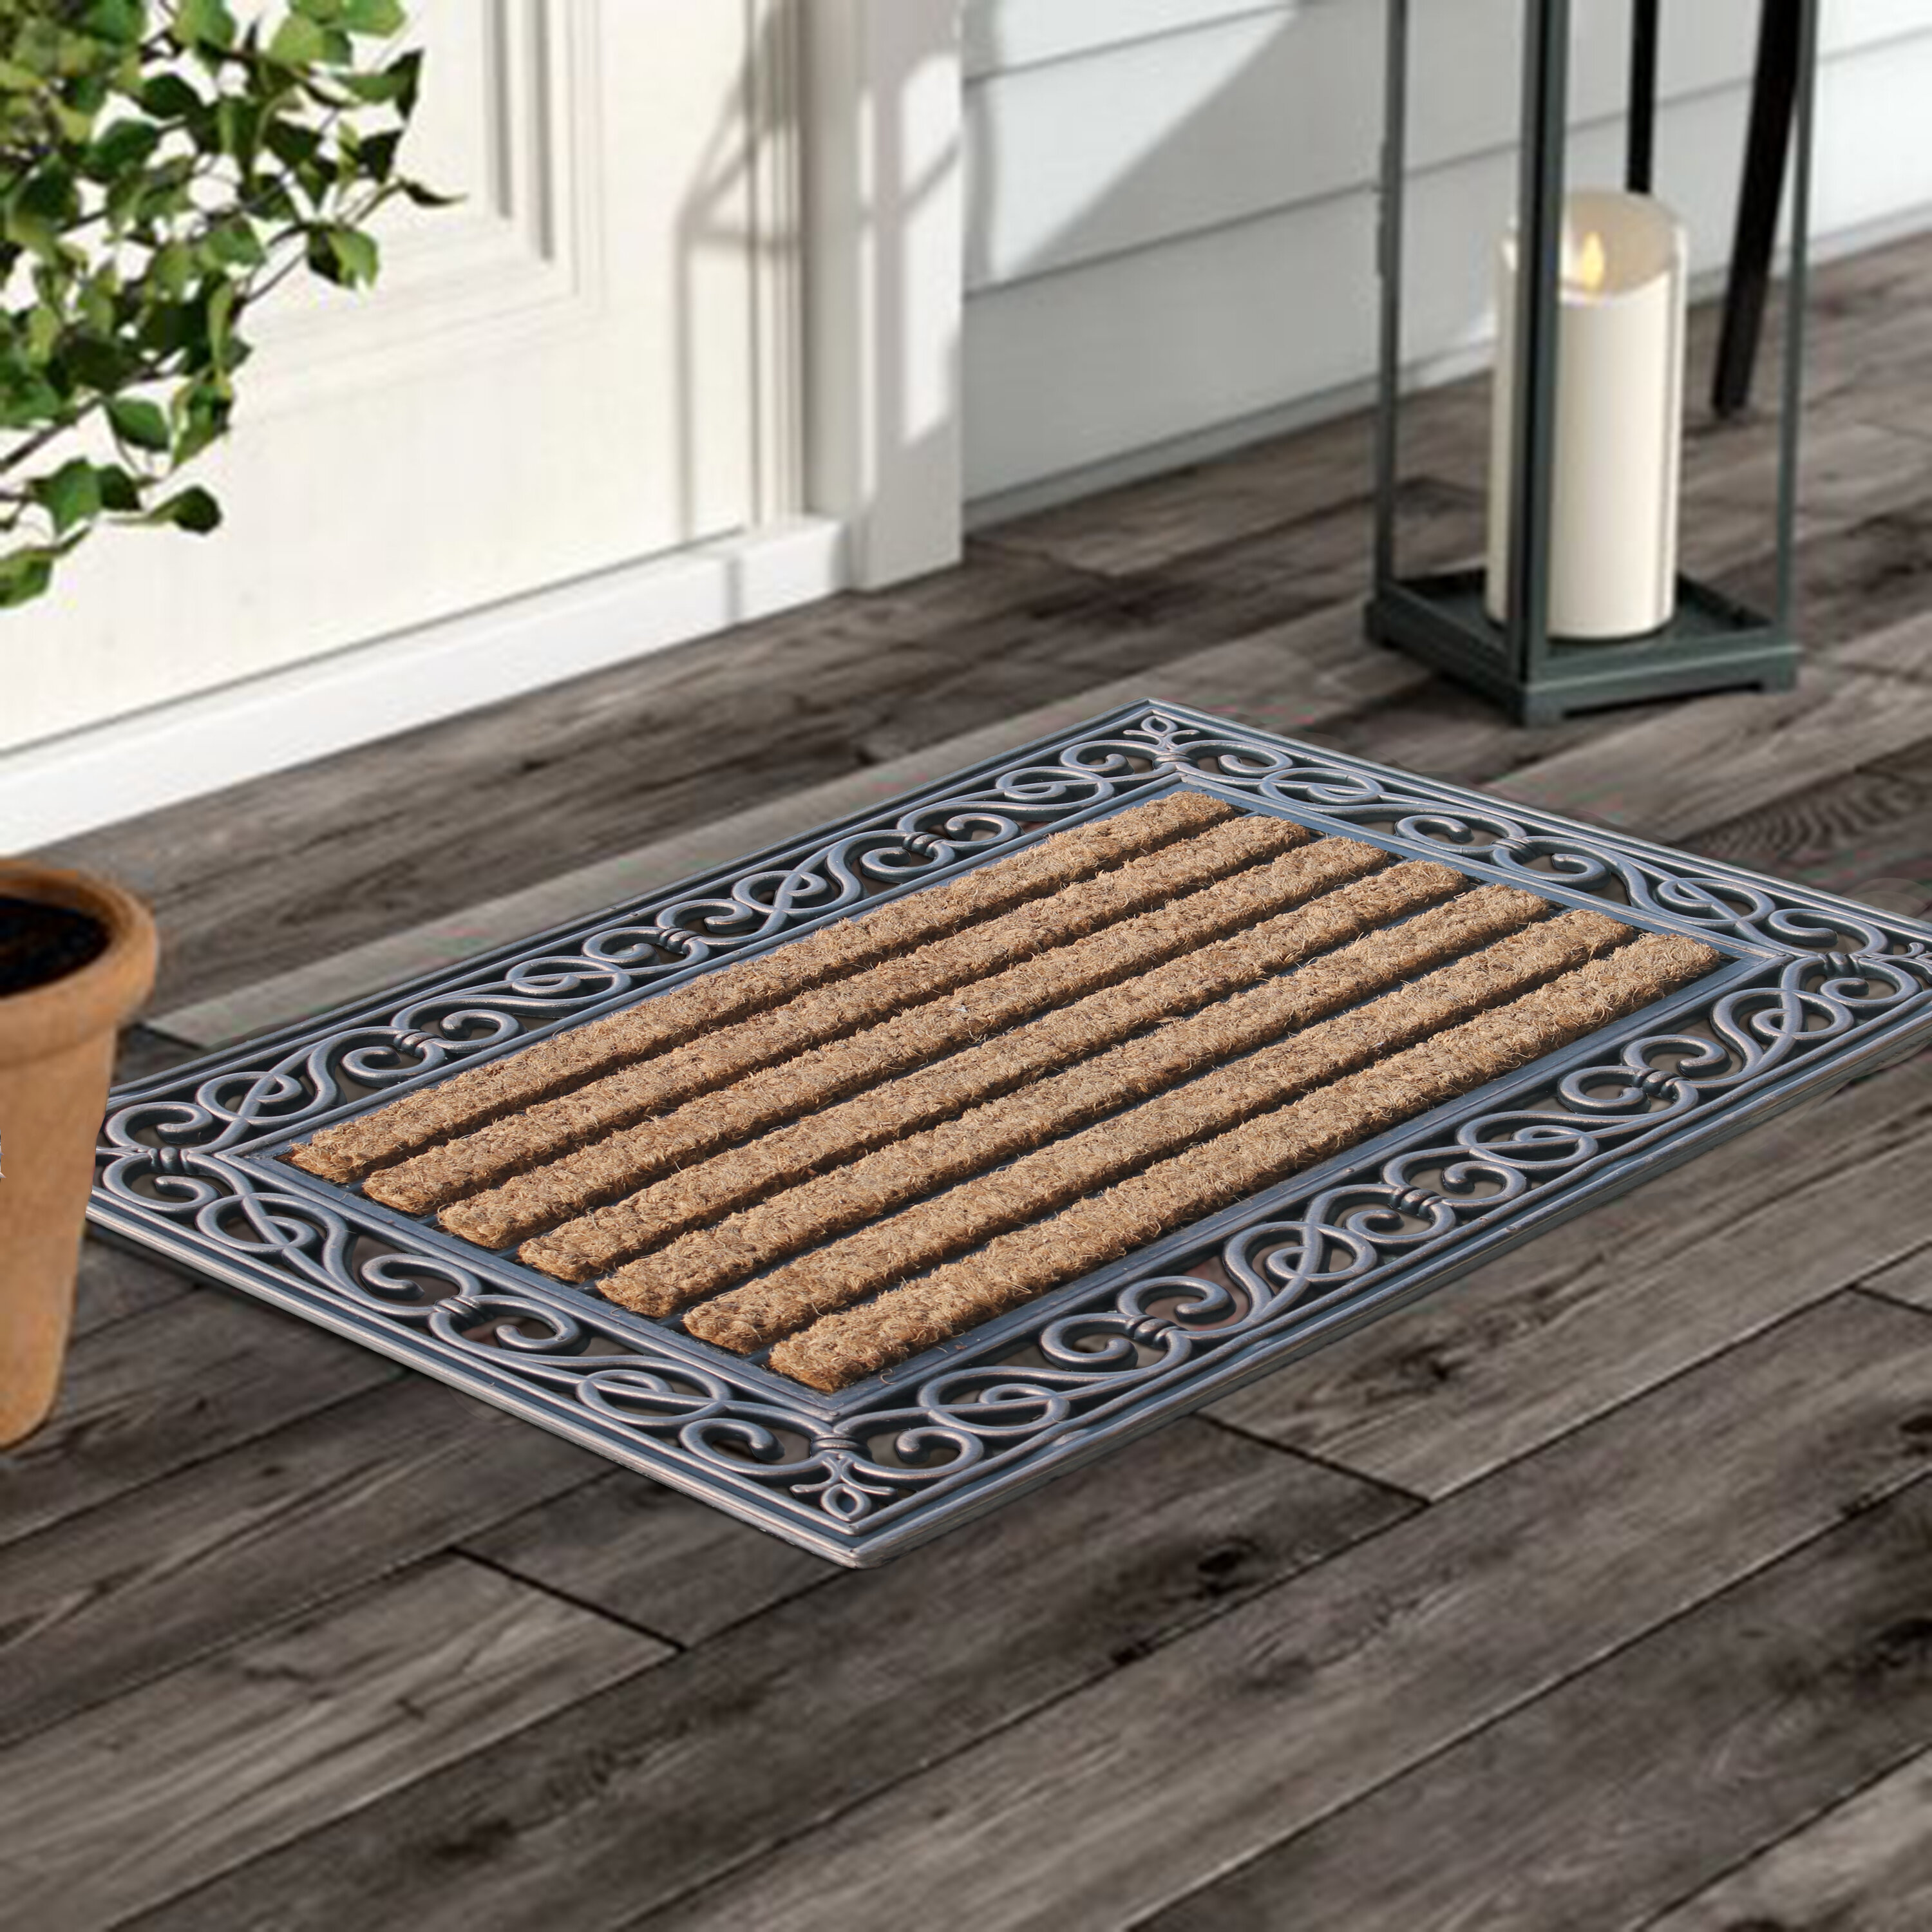 First Impression Molded Striped Coir Door Mat